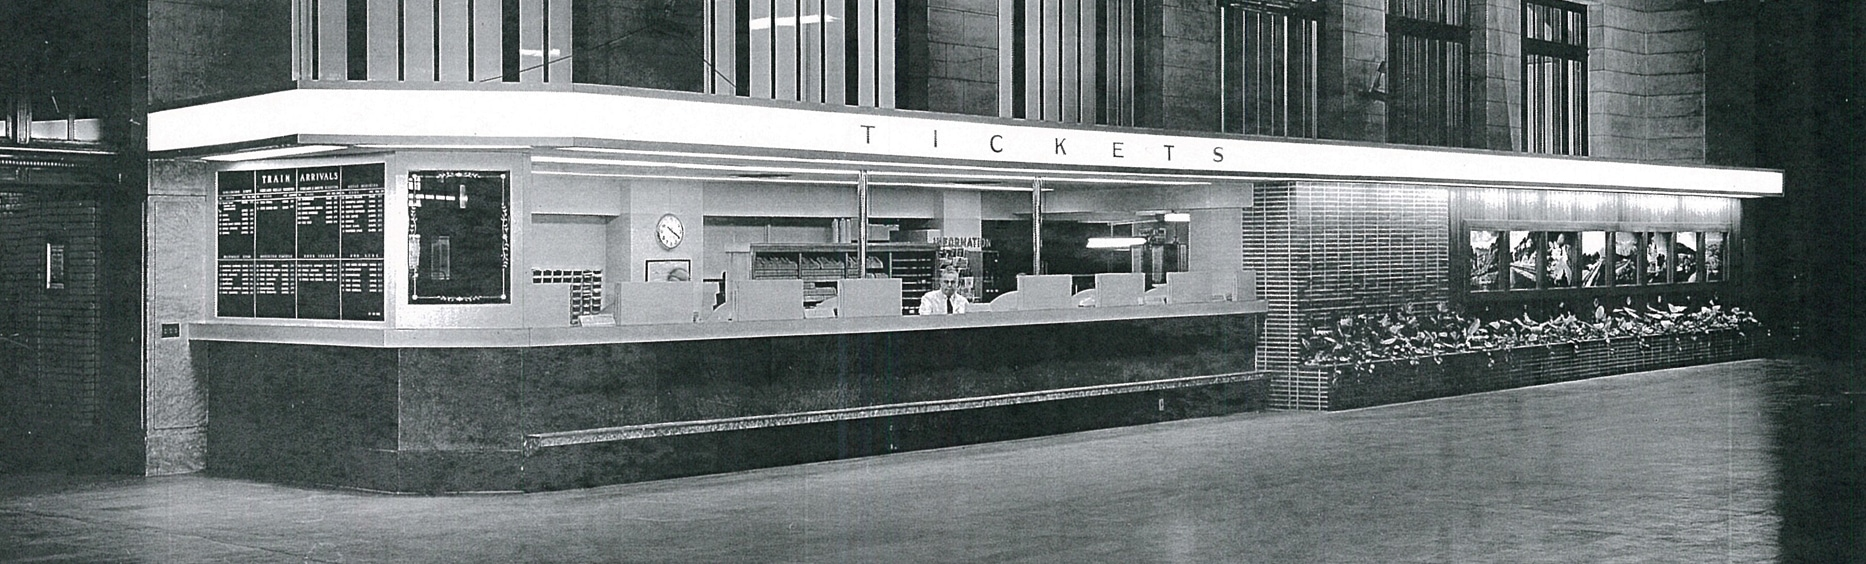 Historic photo of Union Depot's old ticket booth